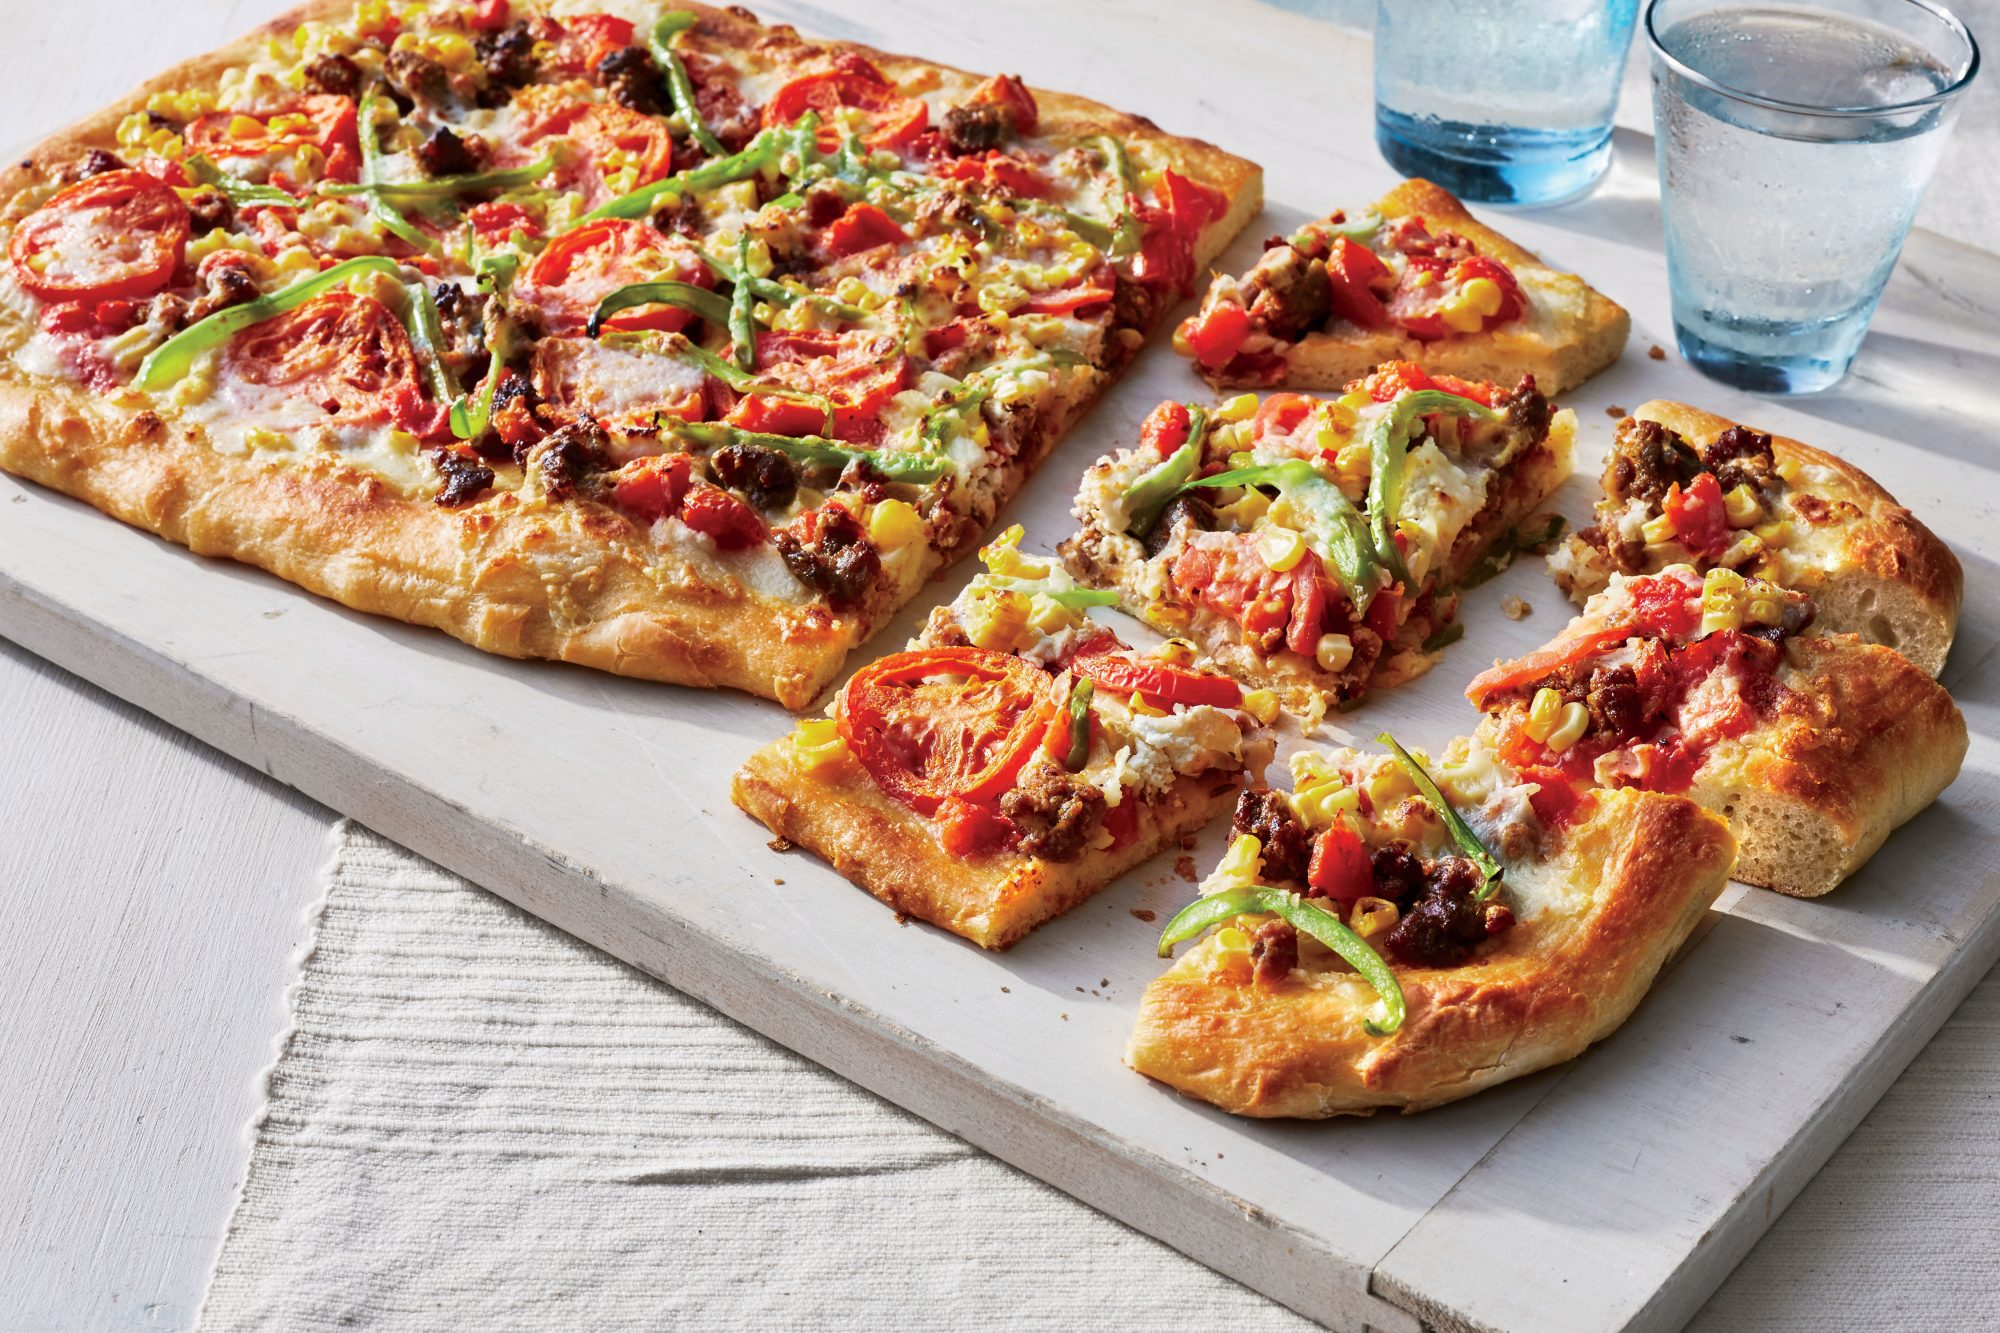 Sheet Pan Pizza with Corn, Tomatoes, and Sausage